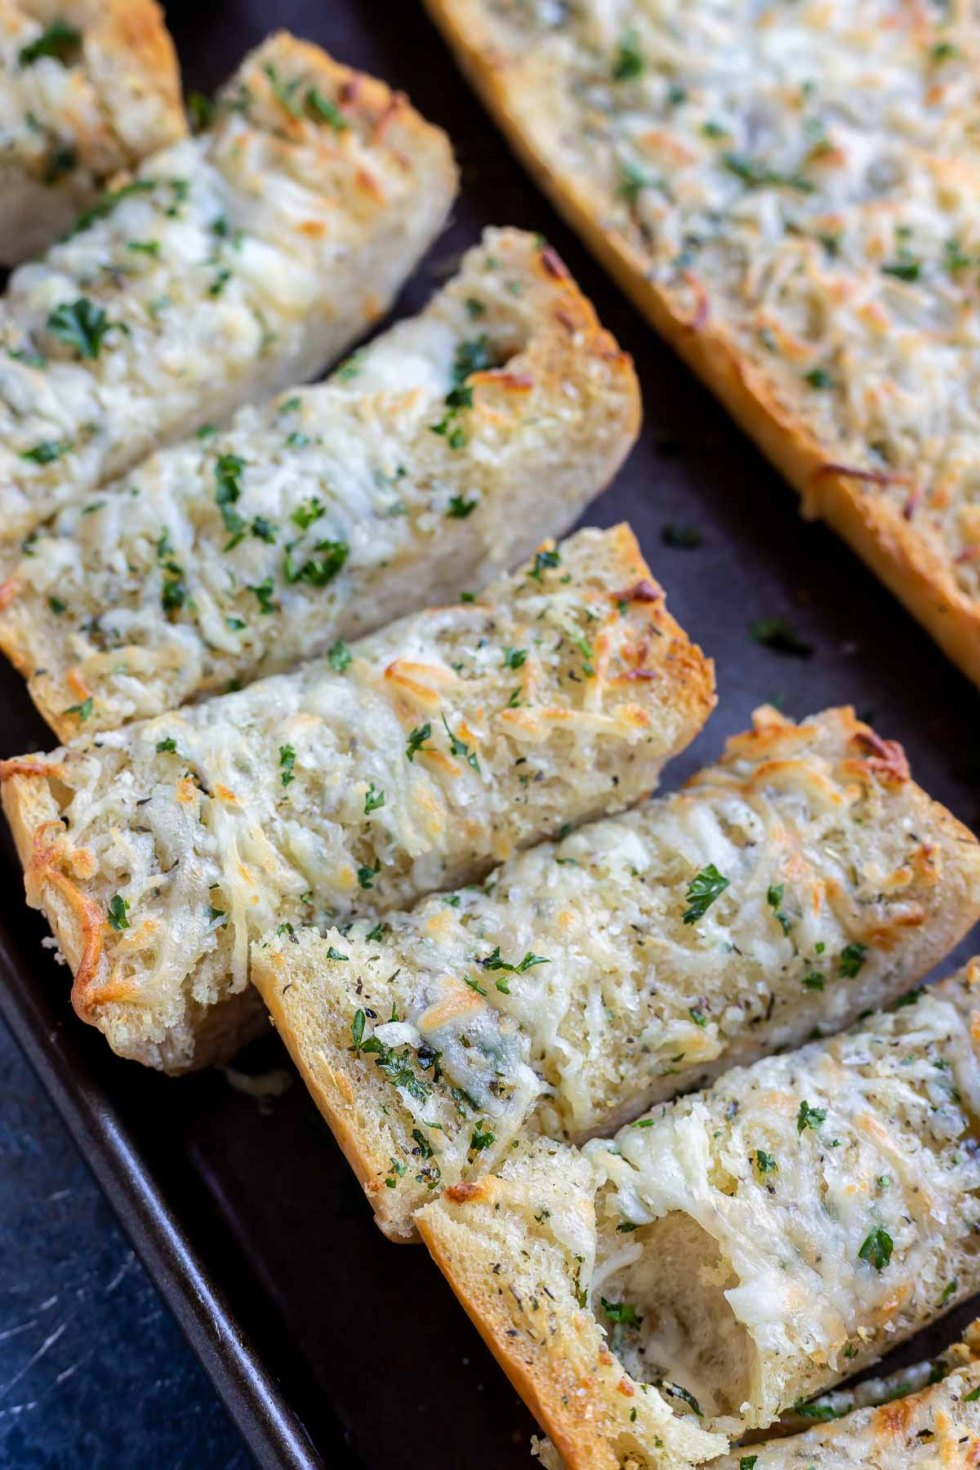 sliced French bread topped with melted cheese and parsley